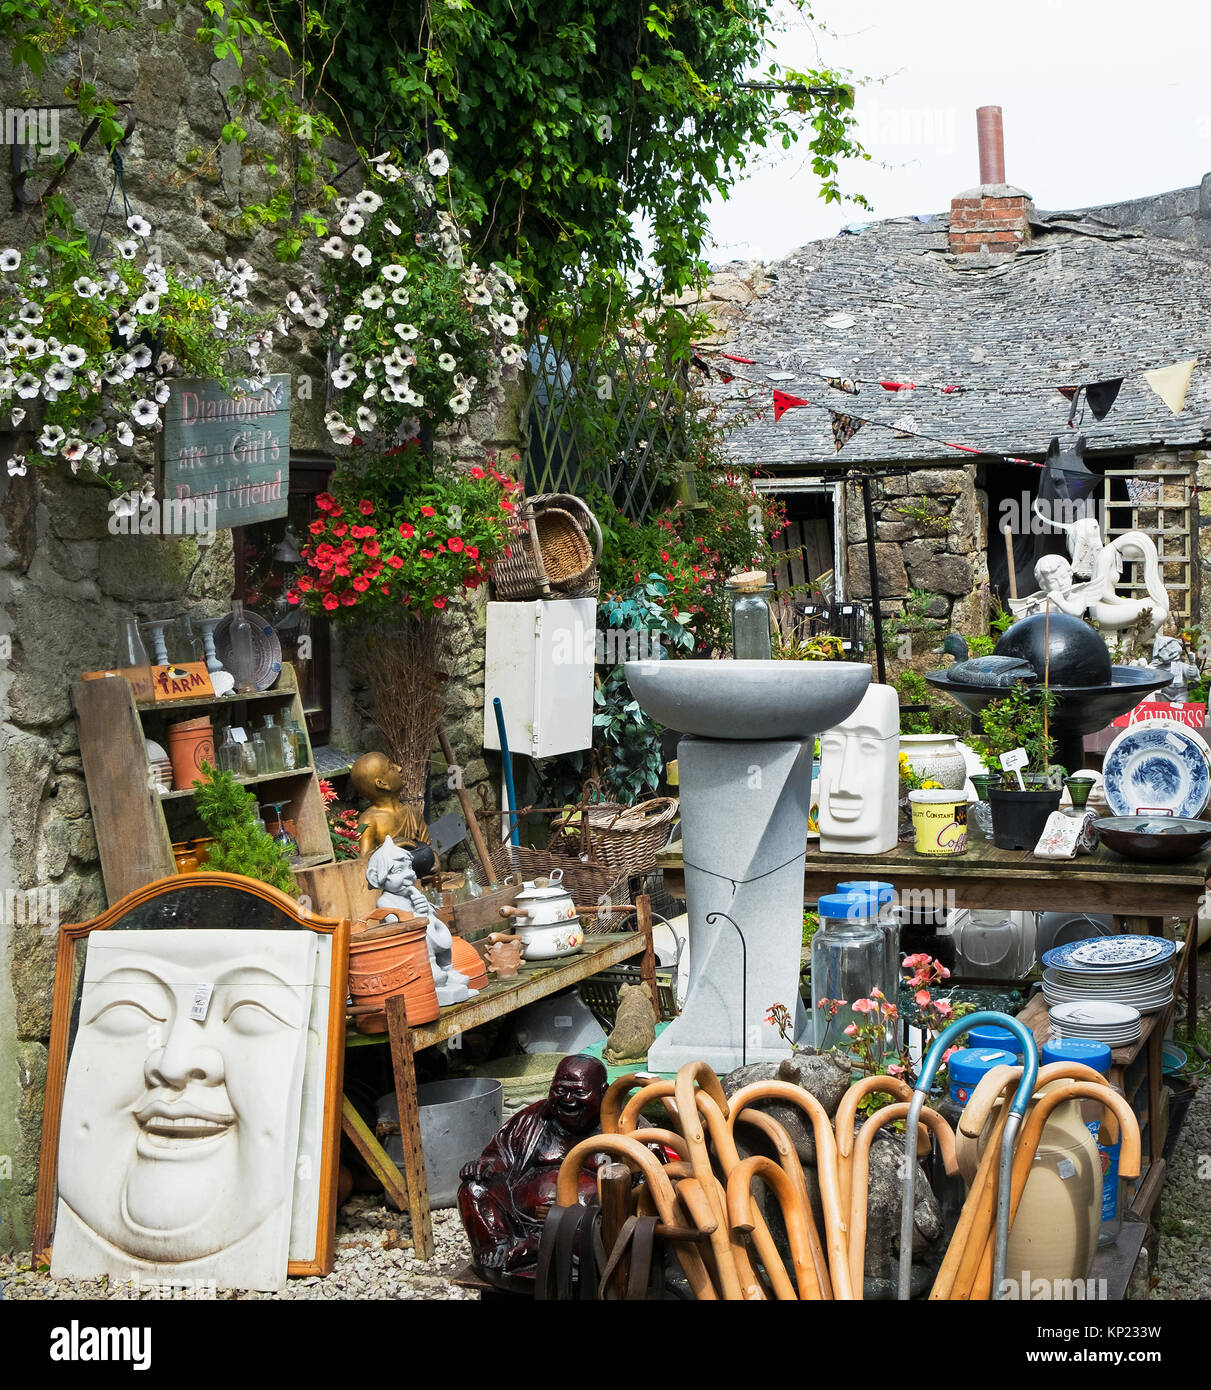 junk shop in st.just, cornwall, england, uk. - Stock Image